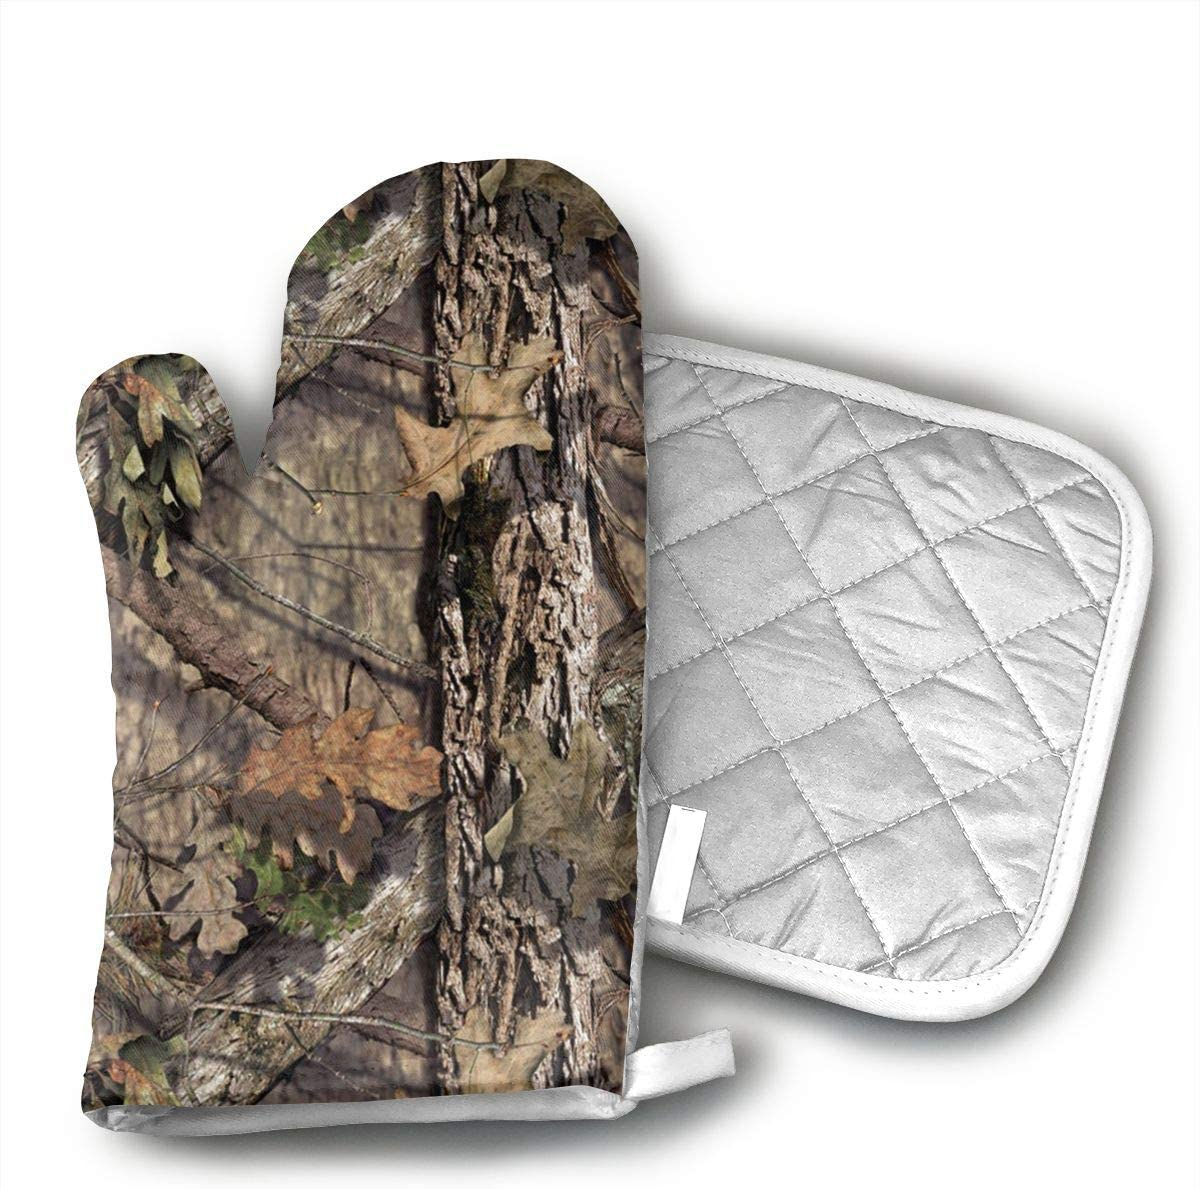 Wiqo9 Camo Tree Oven Mitts and Pot Holders Kitchen Mitten Cooking Gloves,Cooking, Baking, BBQ.